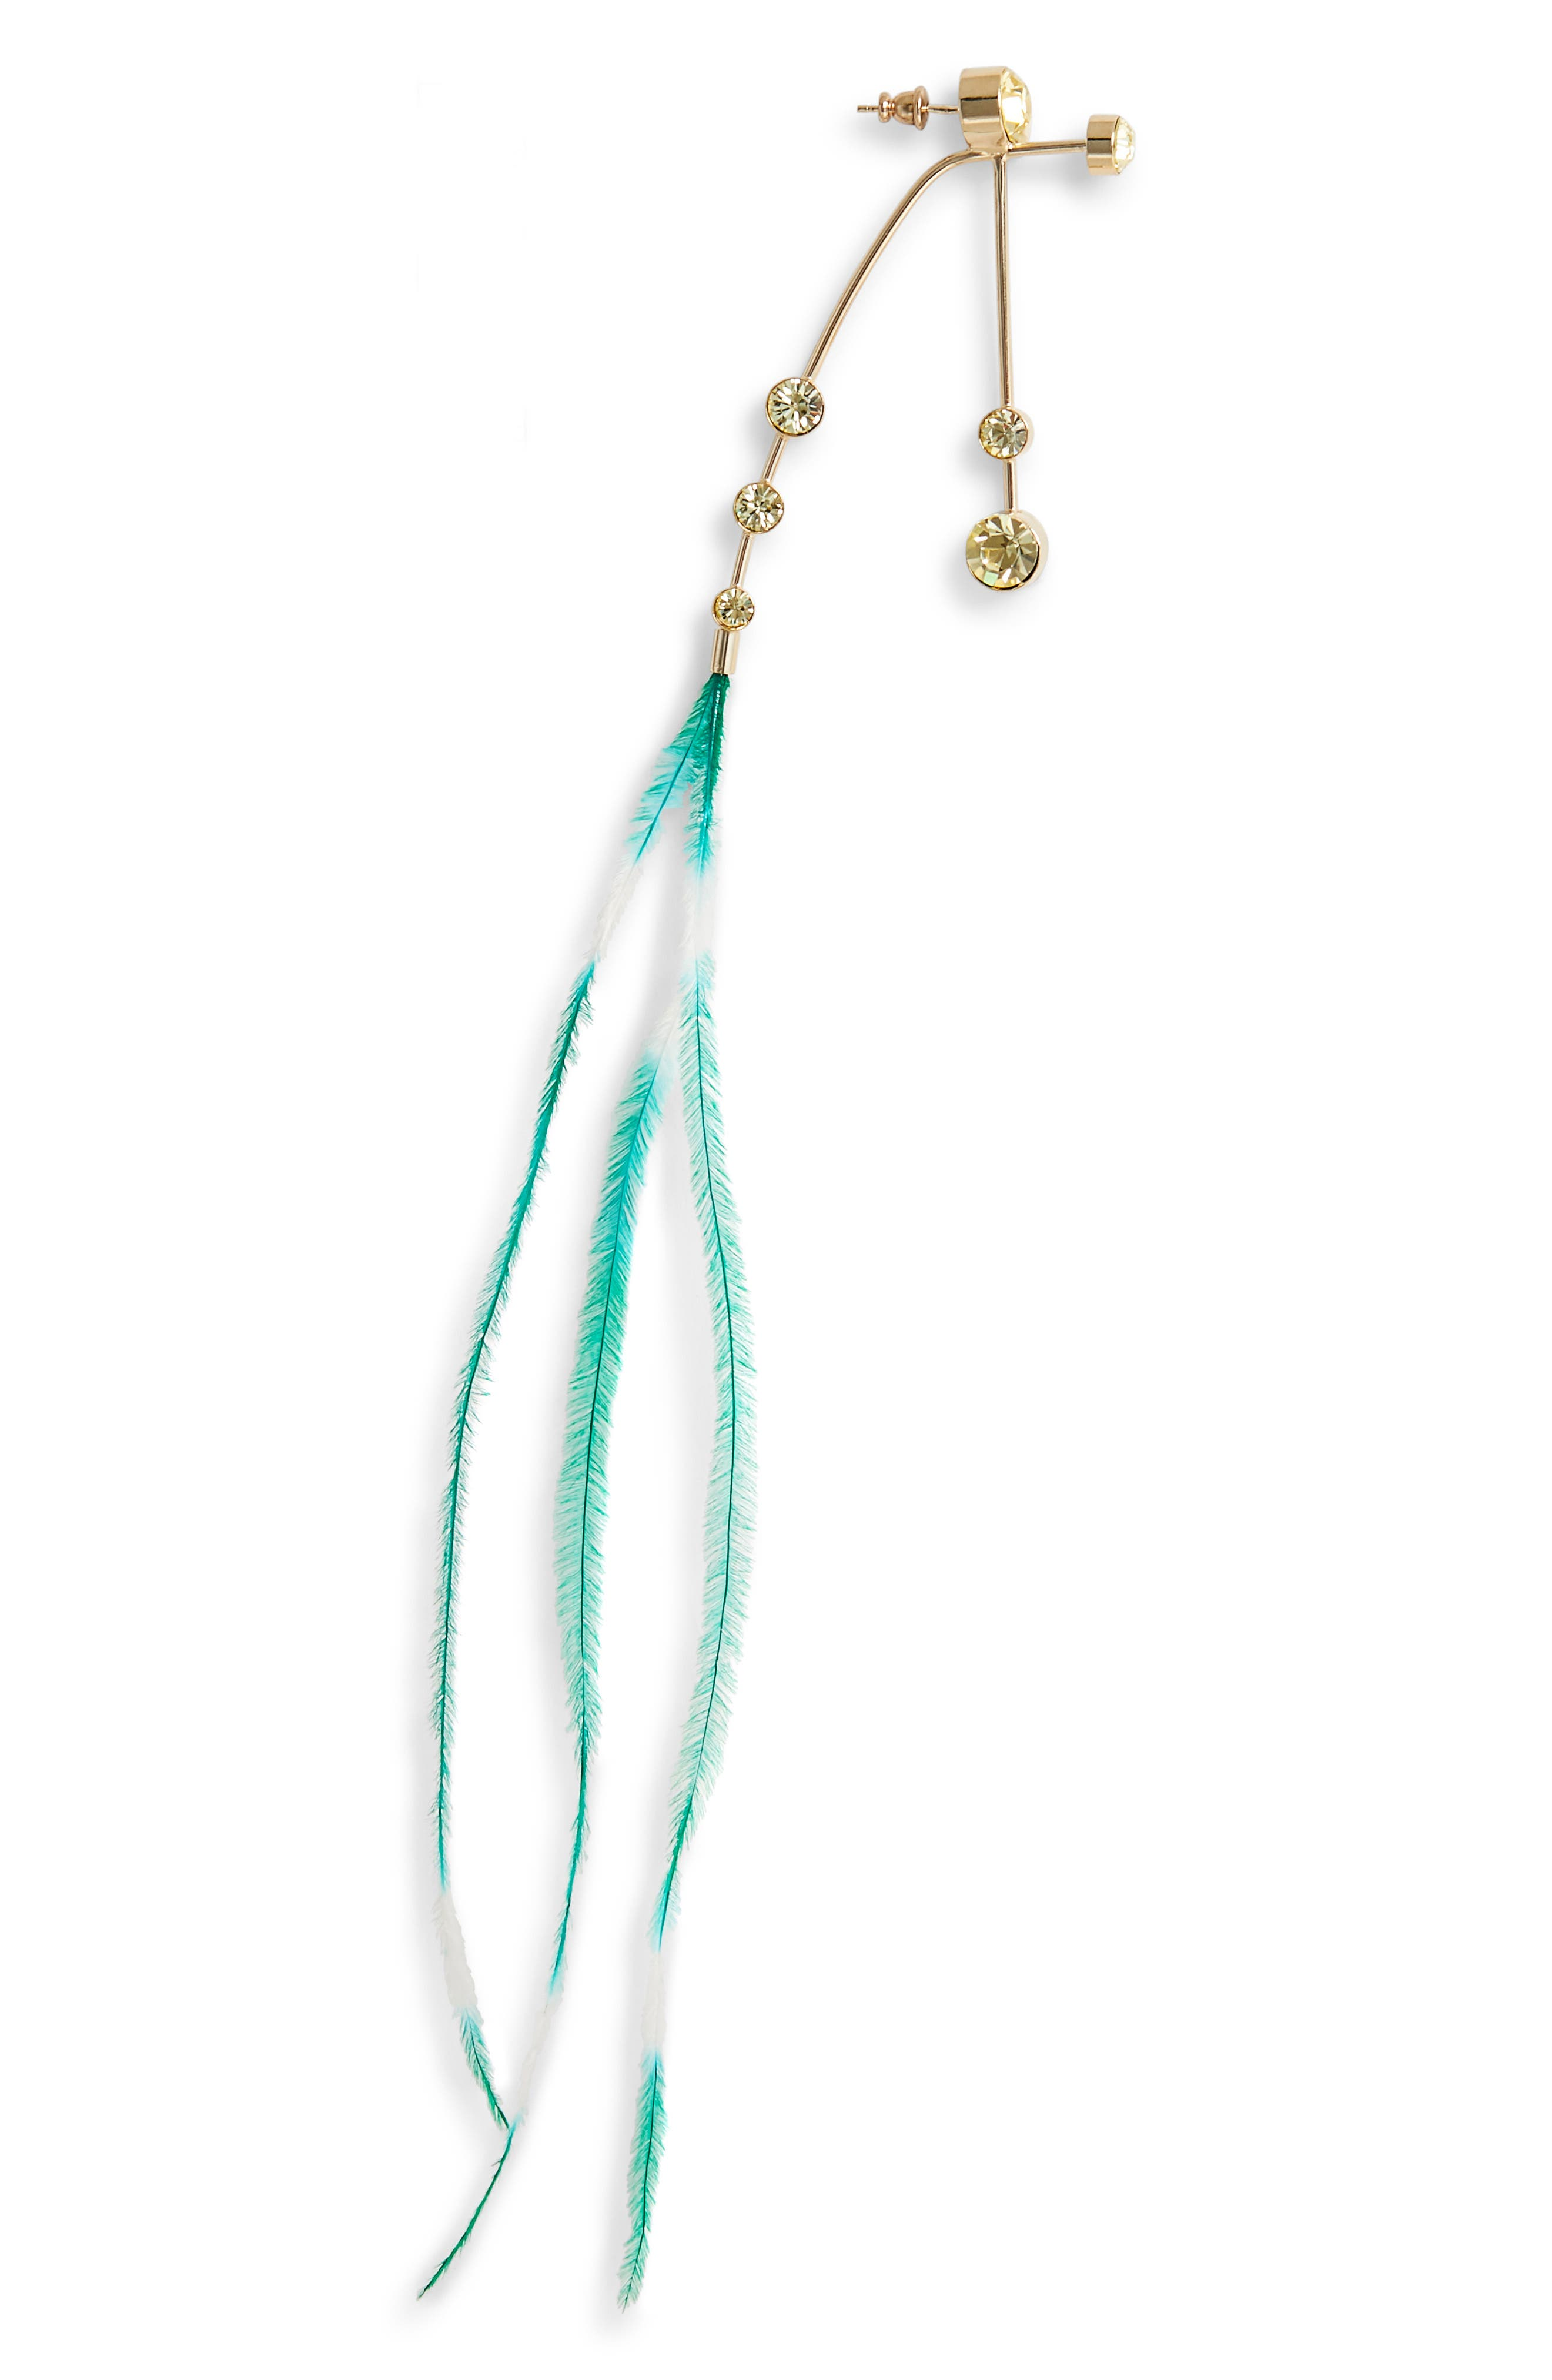 DRIES VAN NOTEN Genuine Ostrich Feather Earring, Main, color, 700